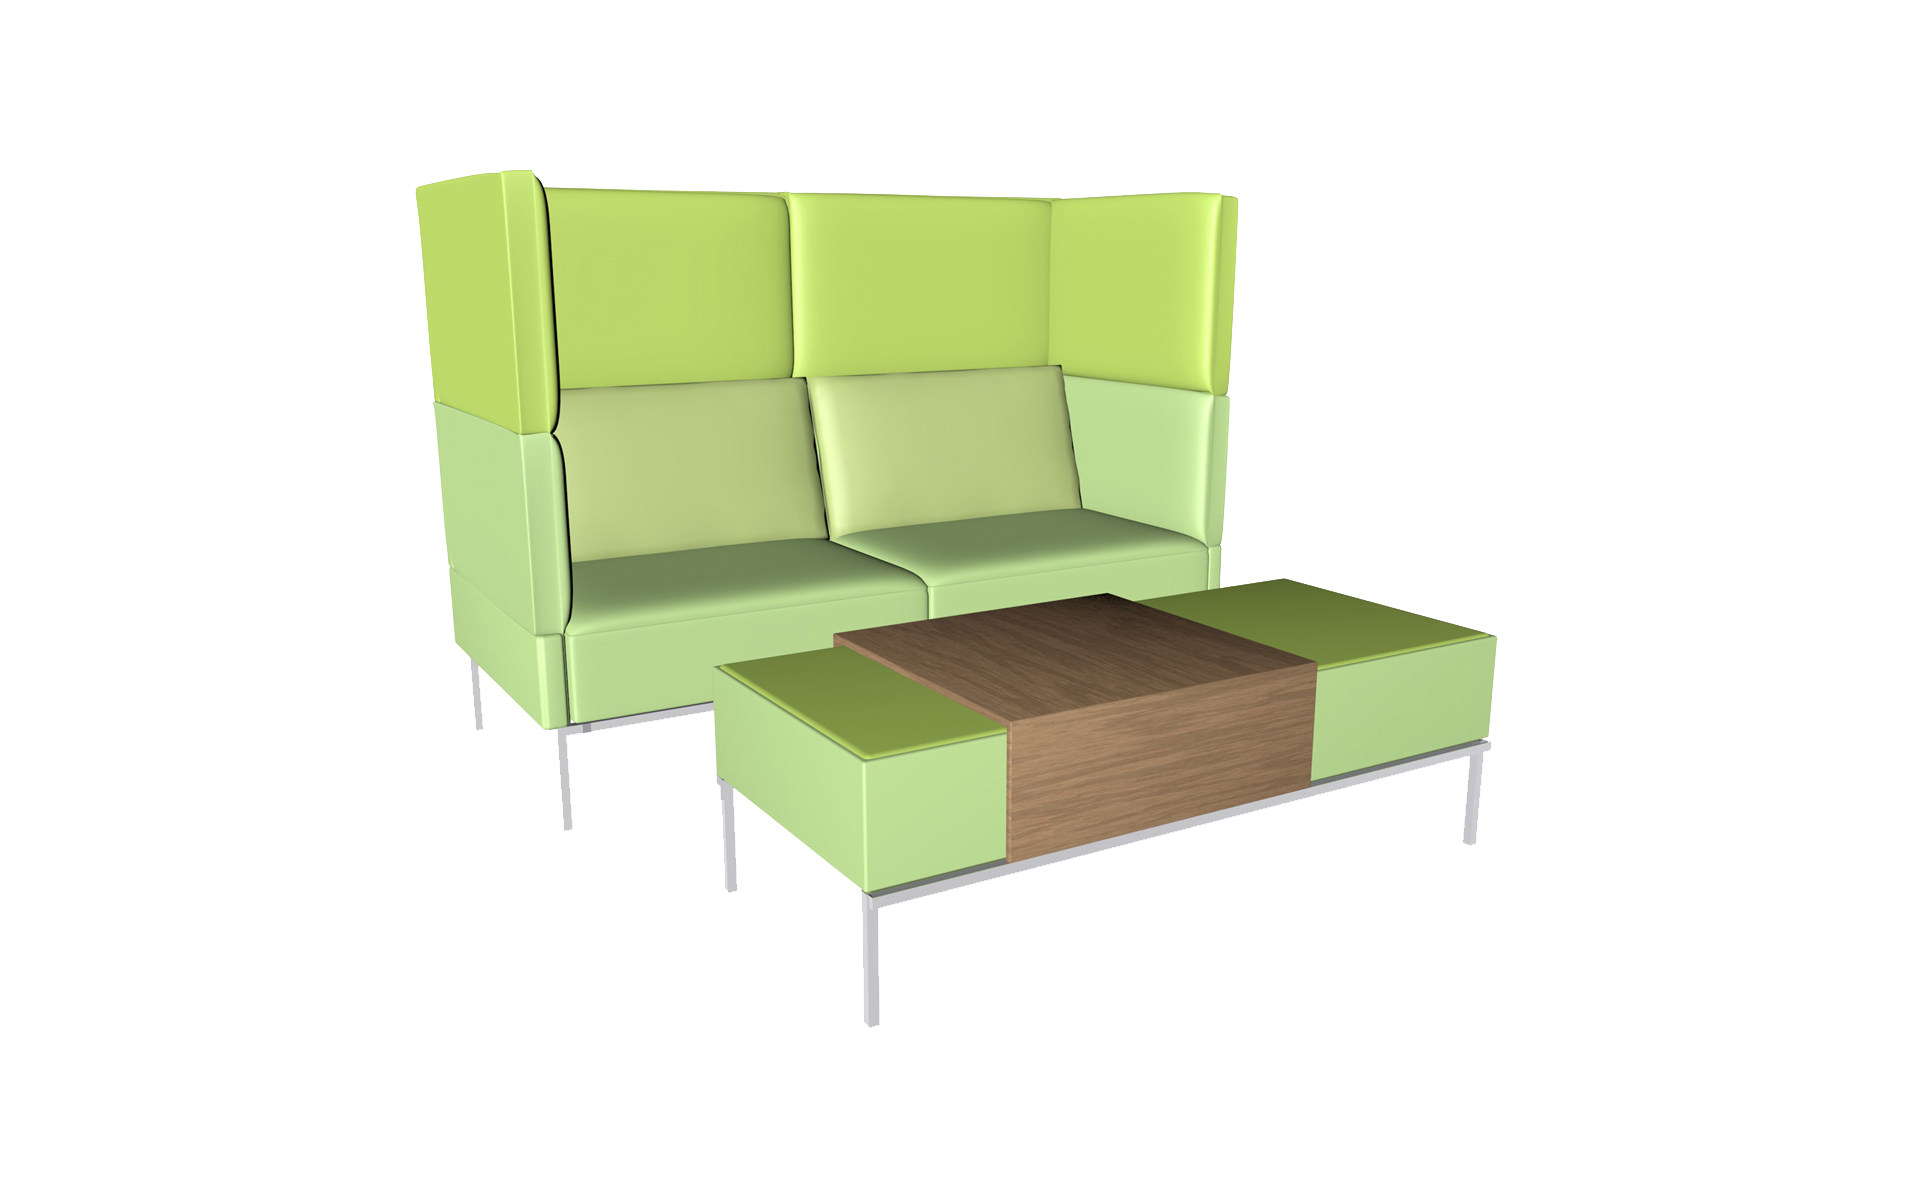 FM office furniture – Lounge furniture for the middle zone | SVEN ...